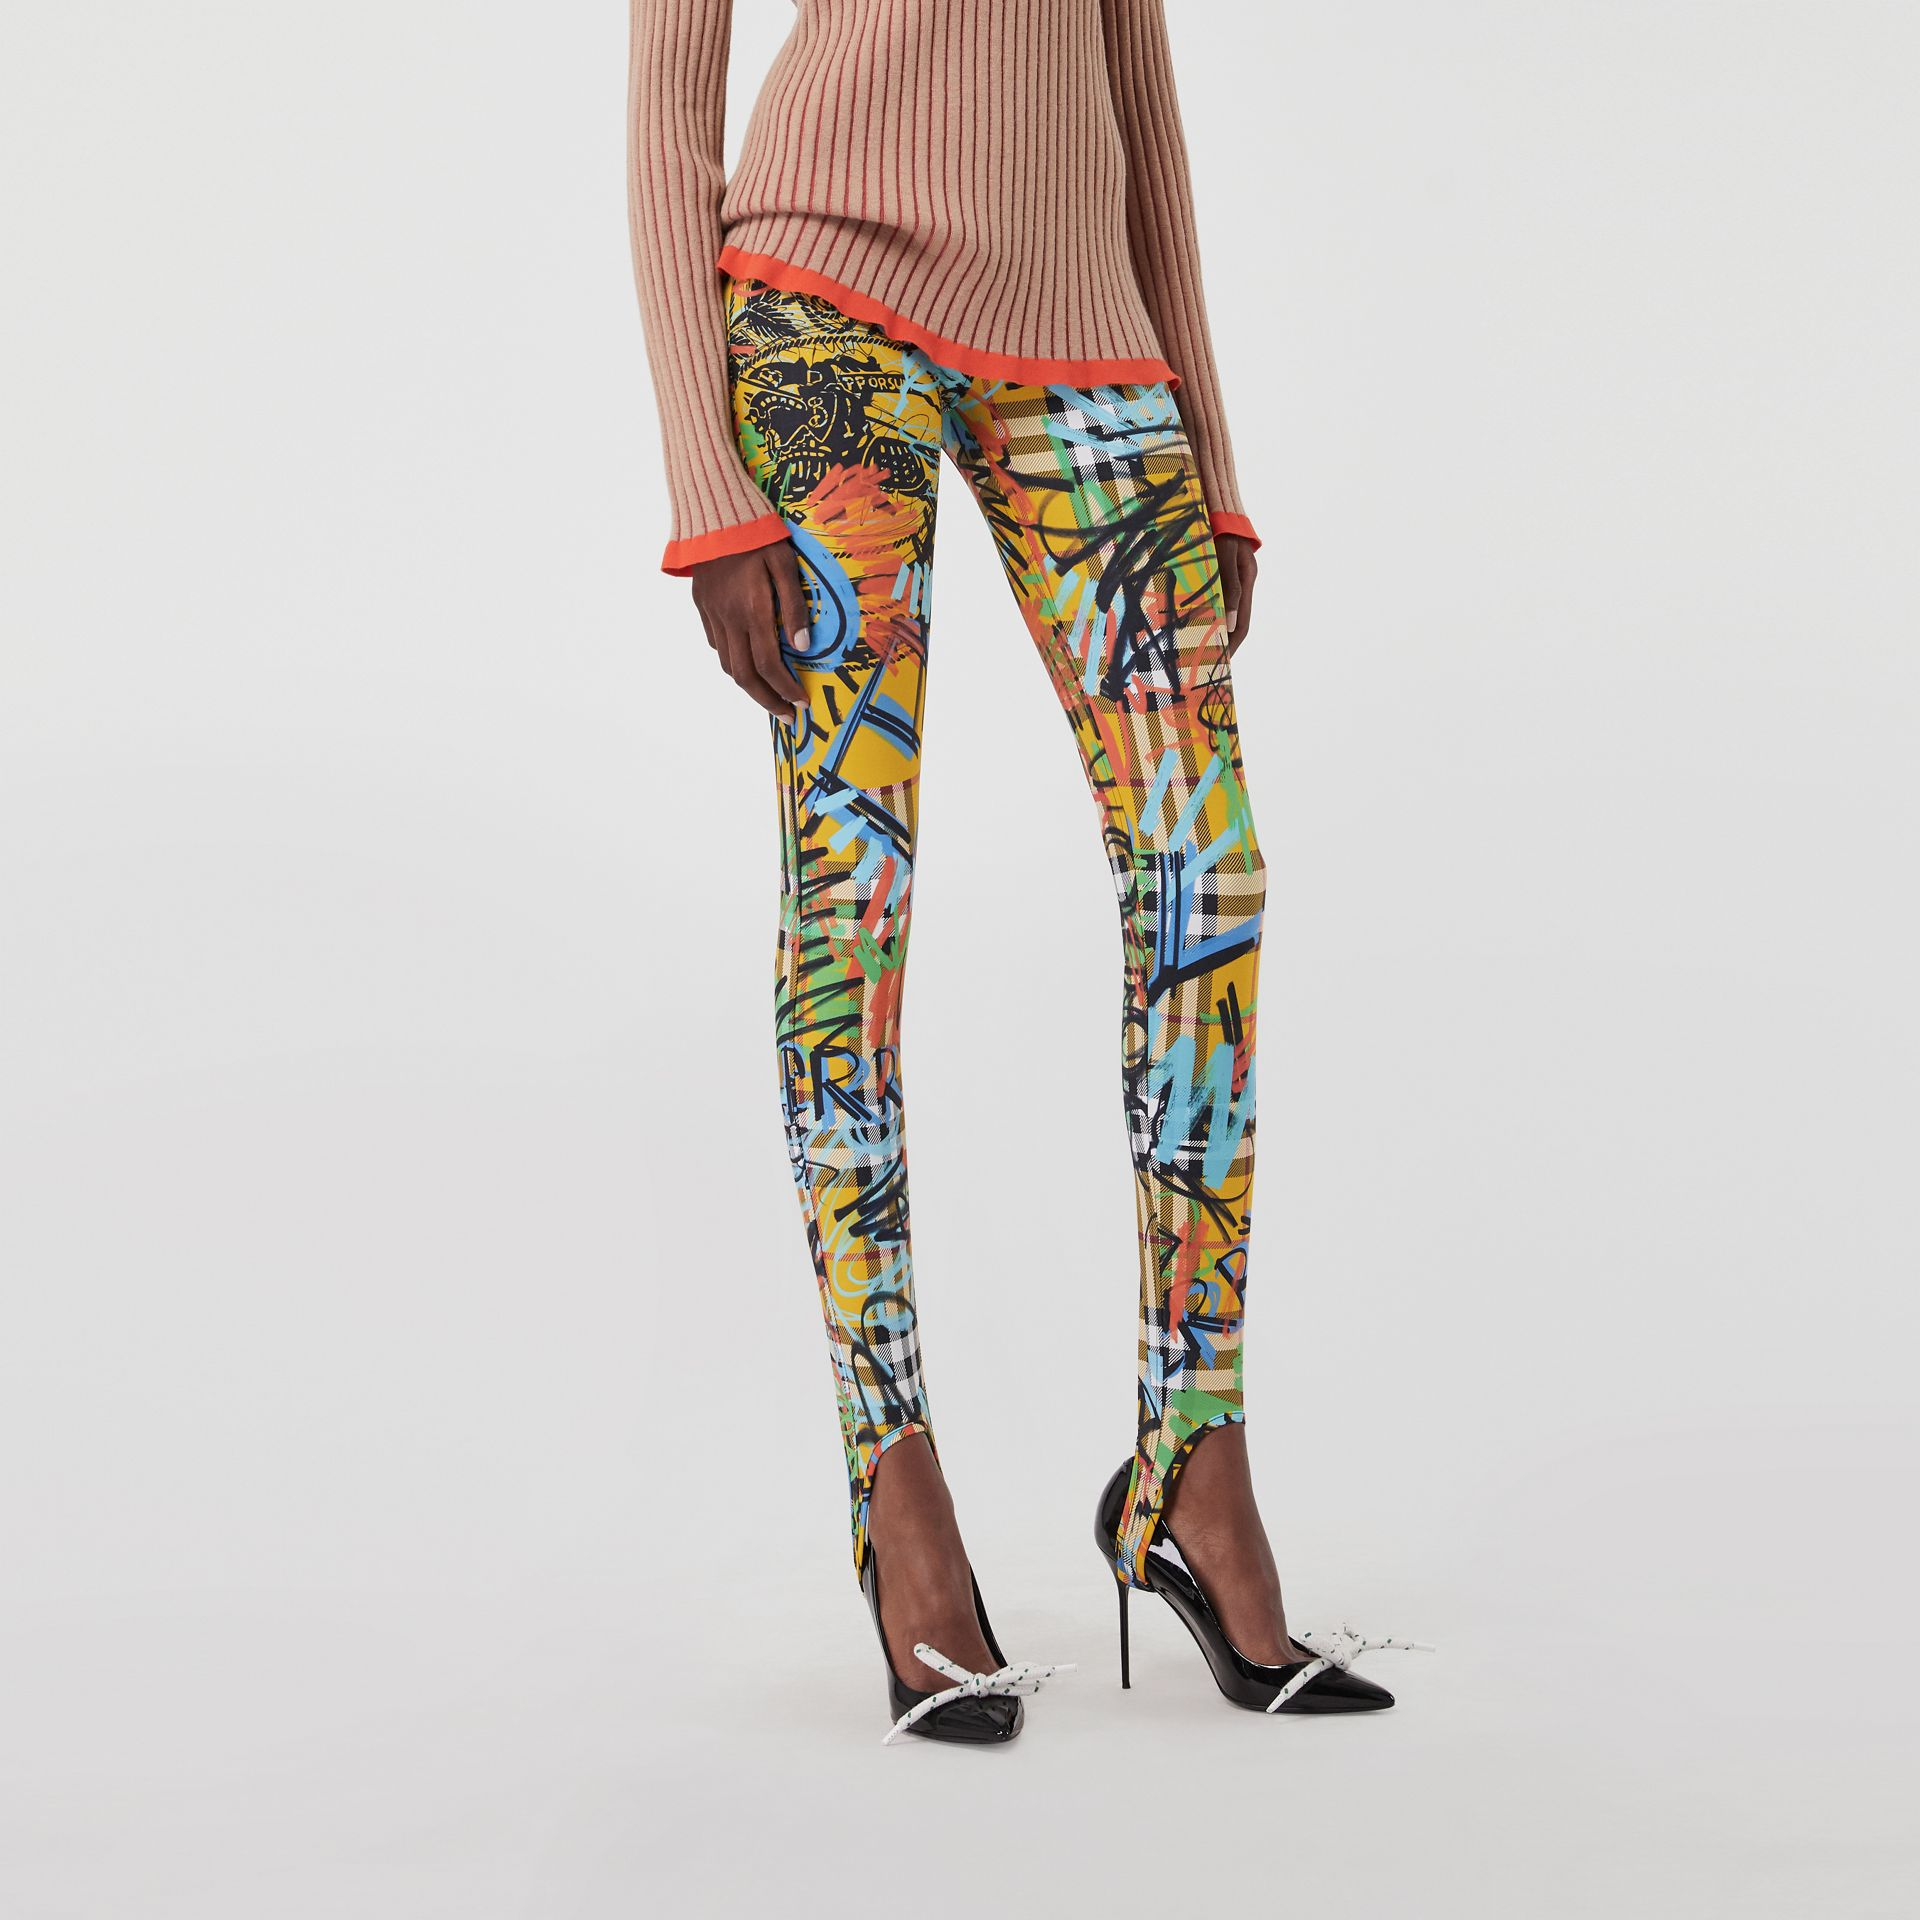 Graffiti Print Vintage Check Leggings in Amber Yellow - Women | Burberry - gallery image 4